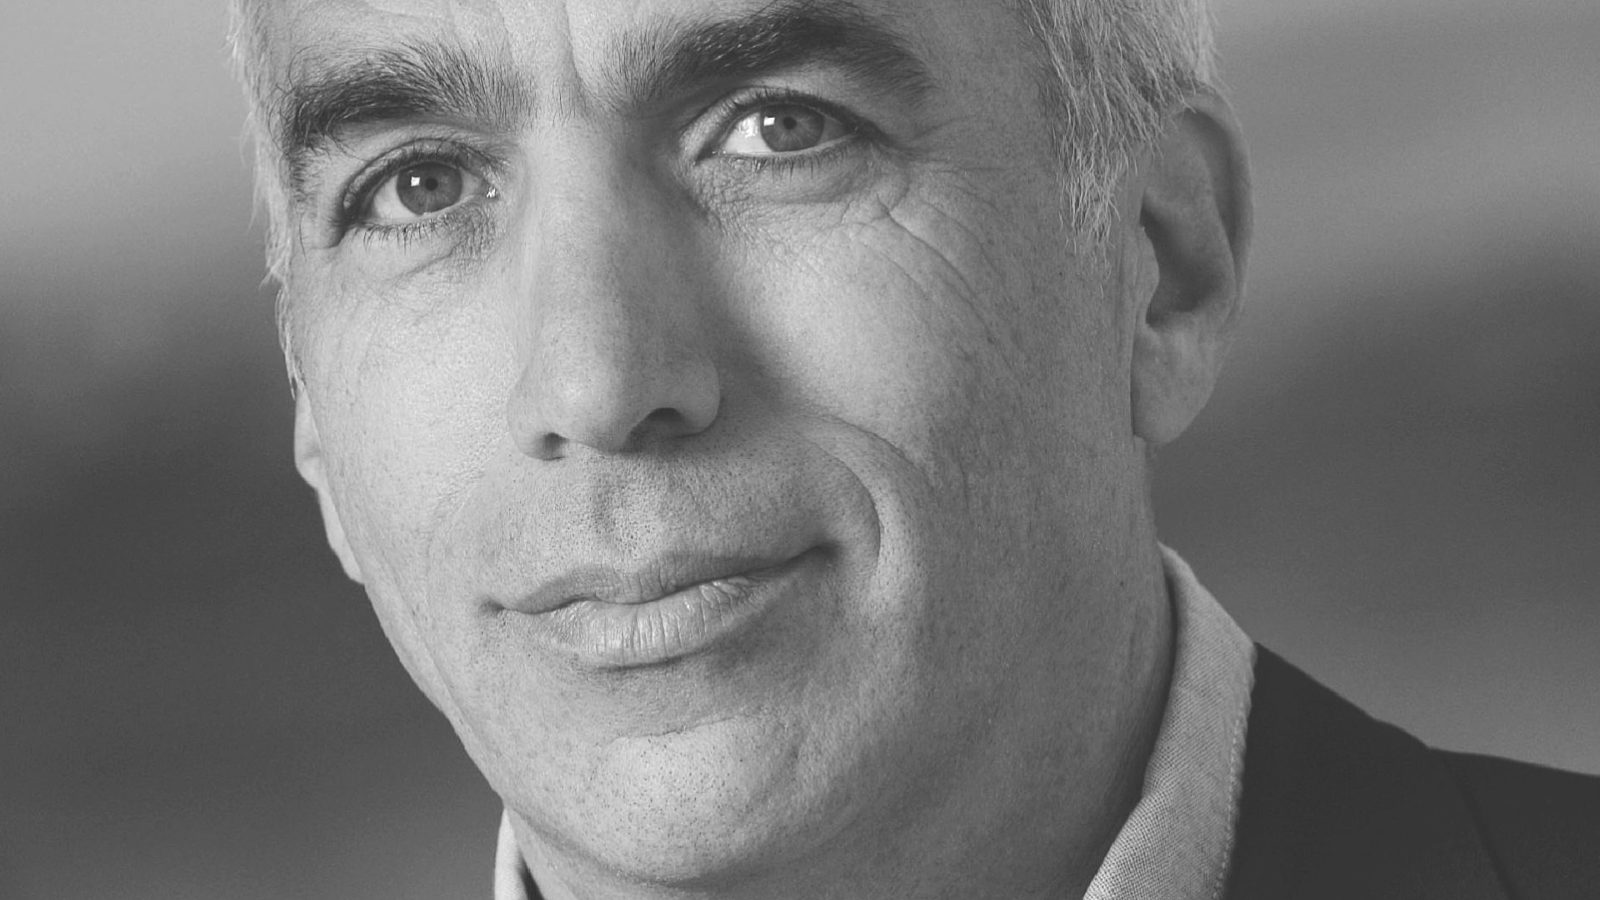 Addiction & Families: A Conversation with Author David Sheff